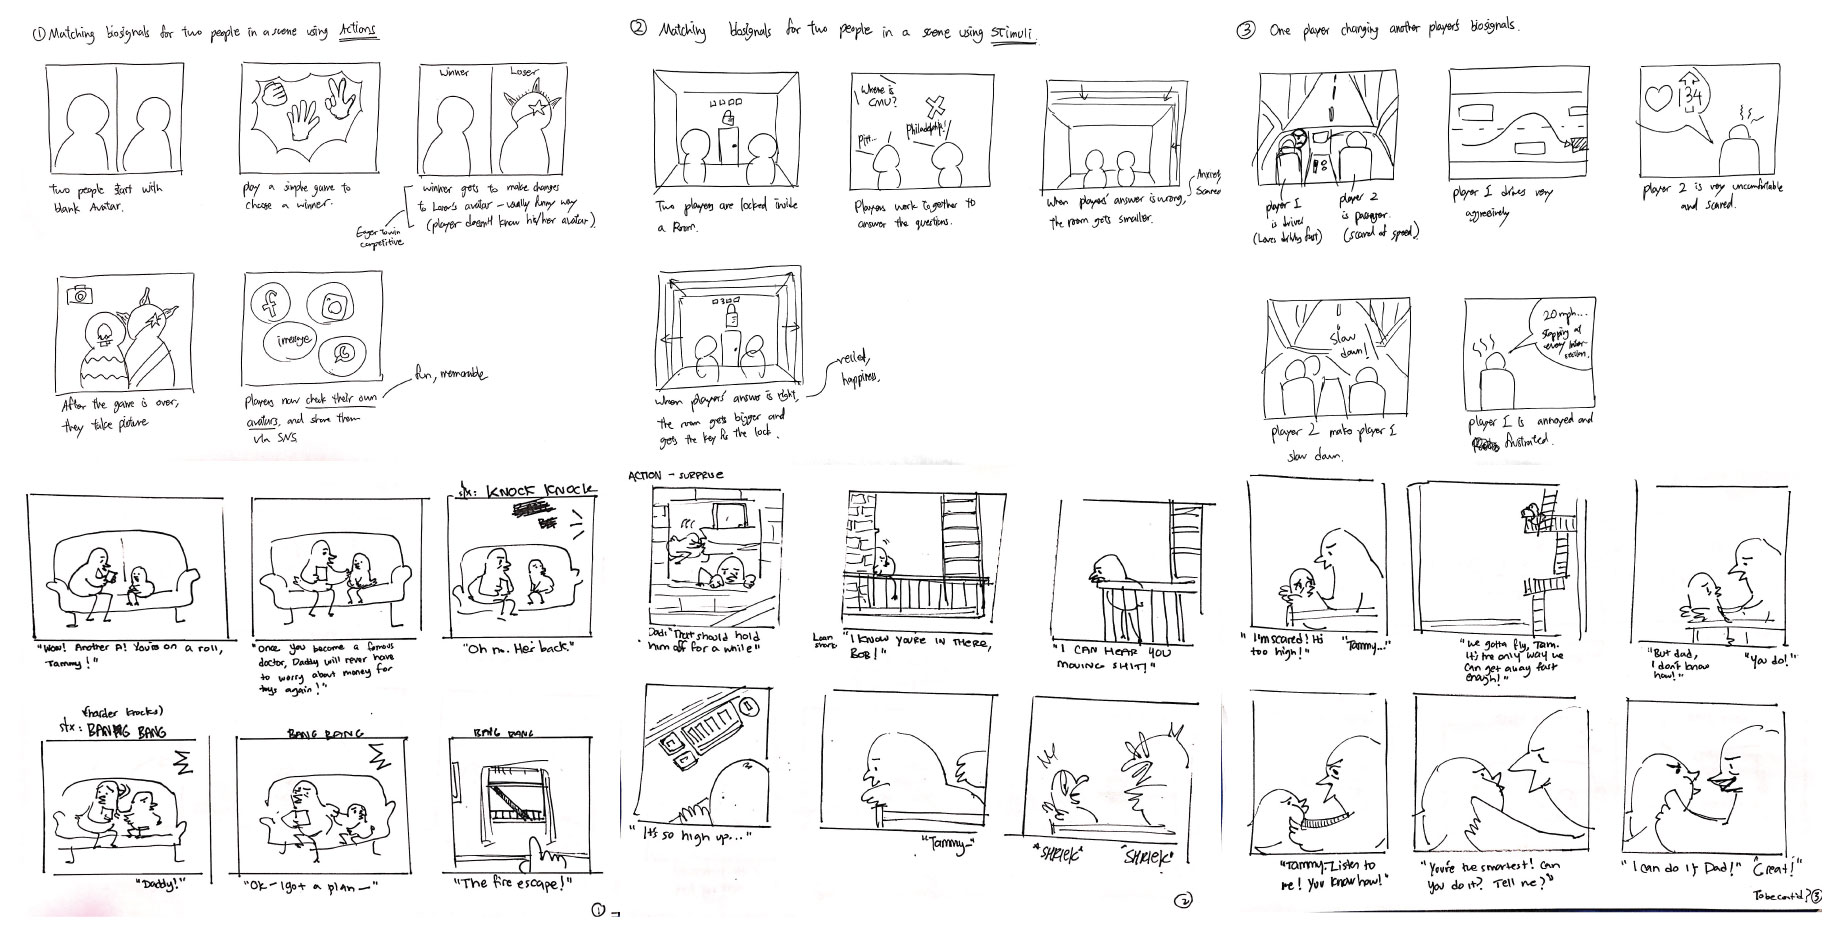 Last row of storyboards are my own.